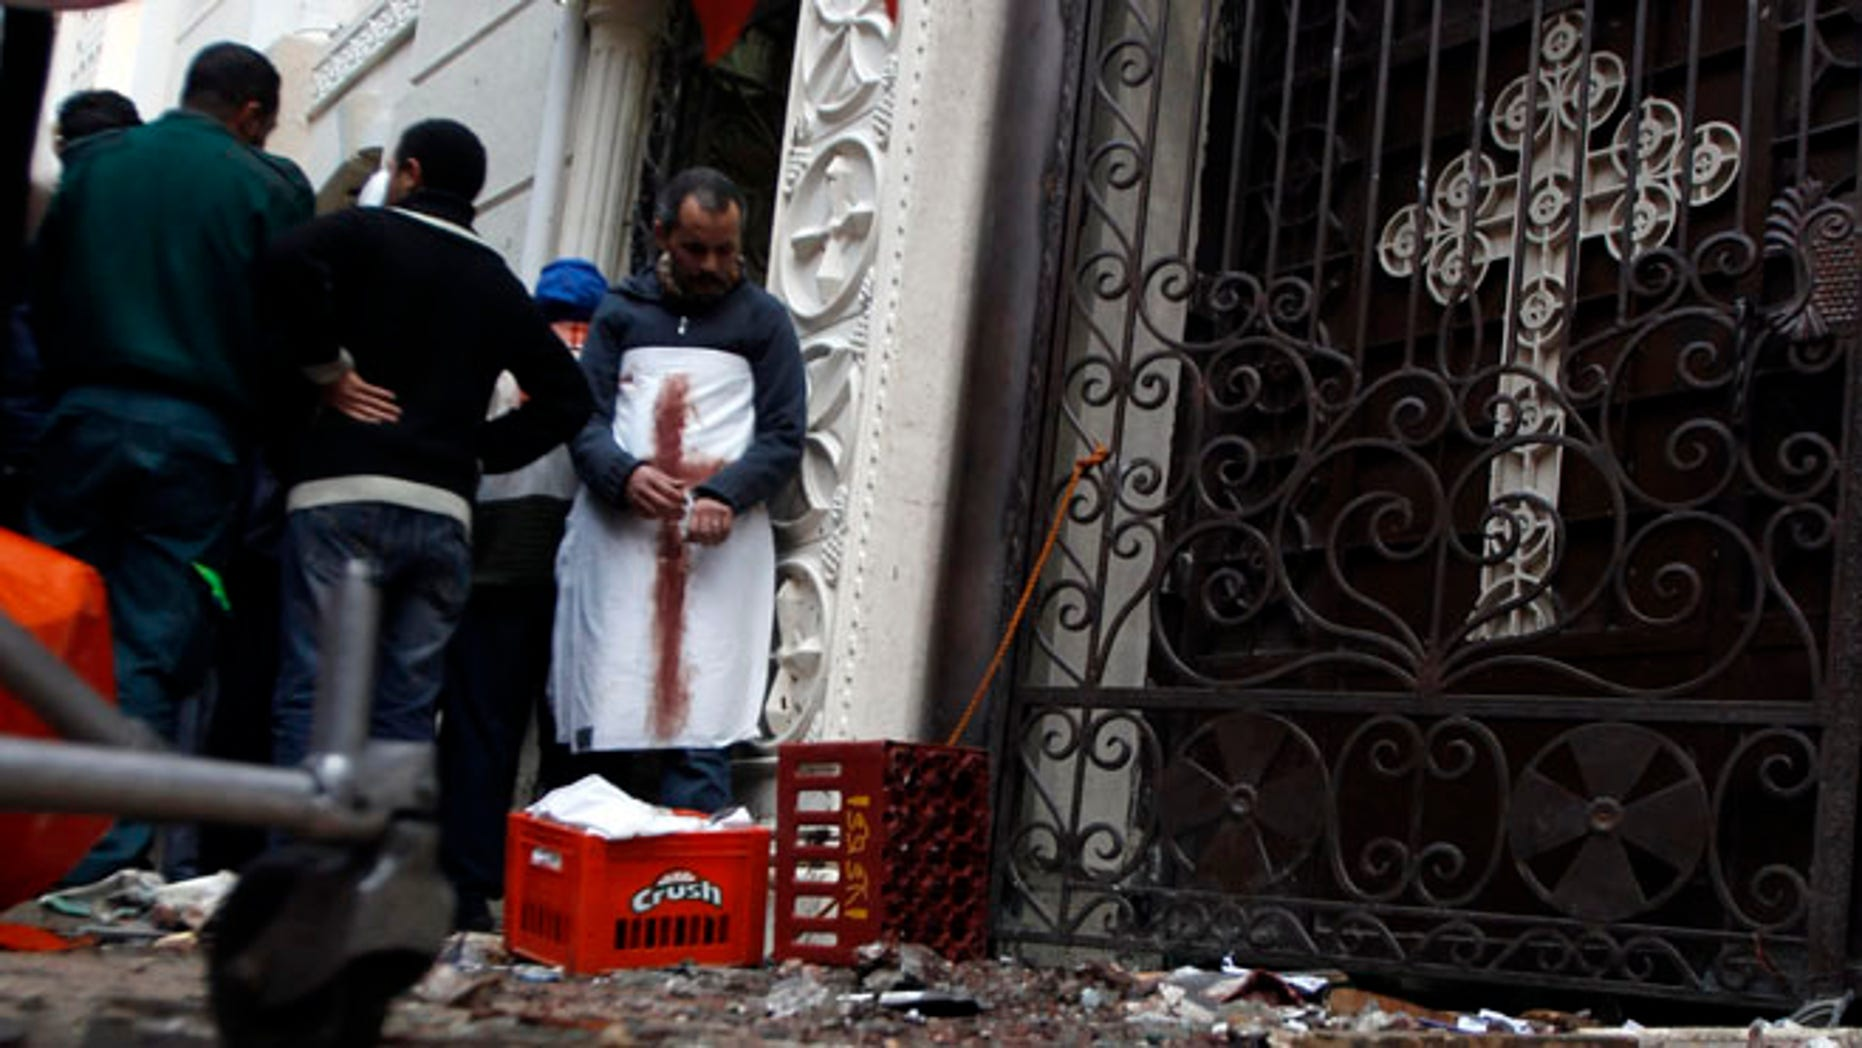 Egyptian Christians gather outside the Coptic Orthodox church after a car bomb attack, in Egypt's northern city of Alexandria, January 1, 2011.